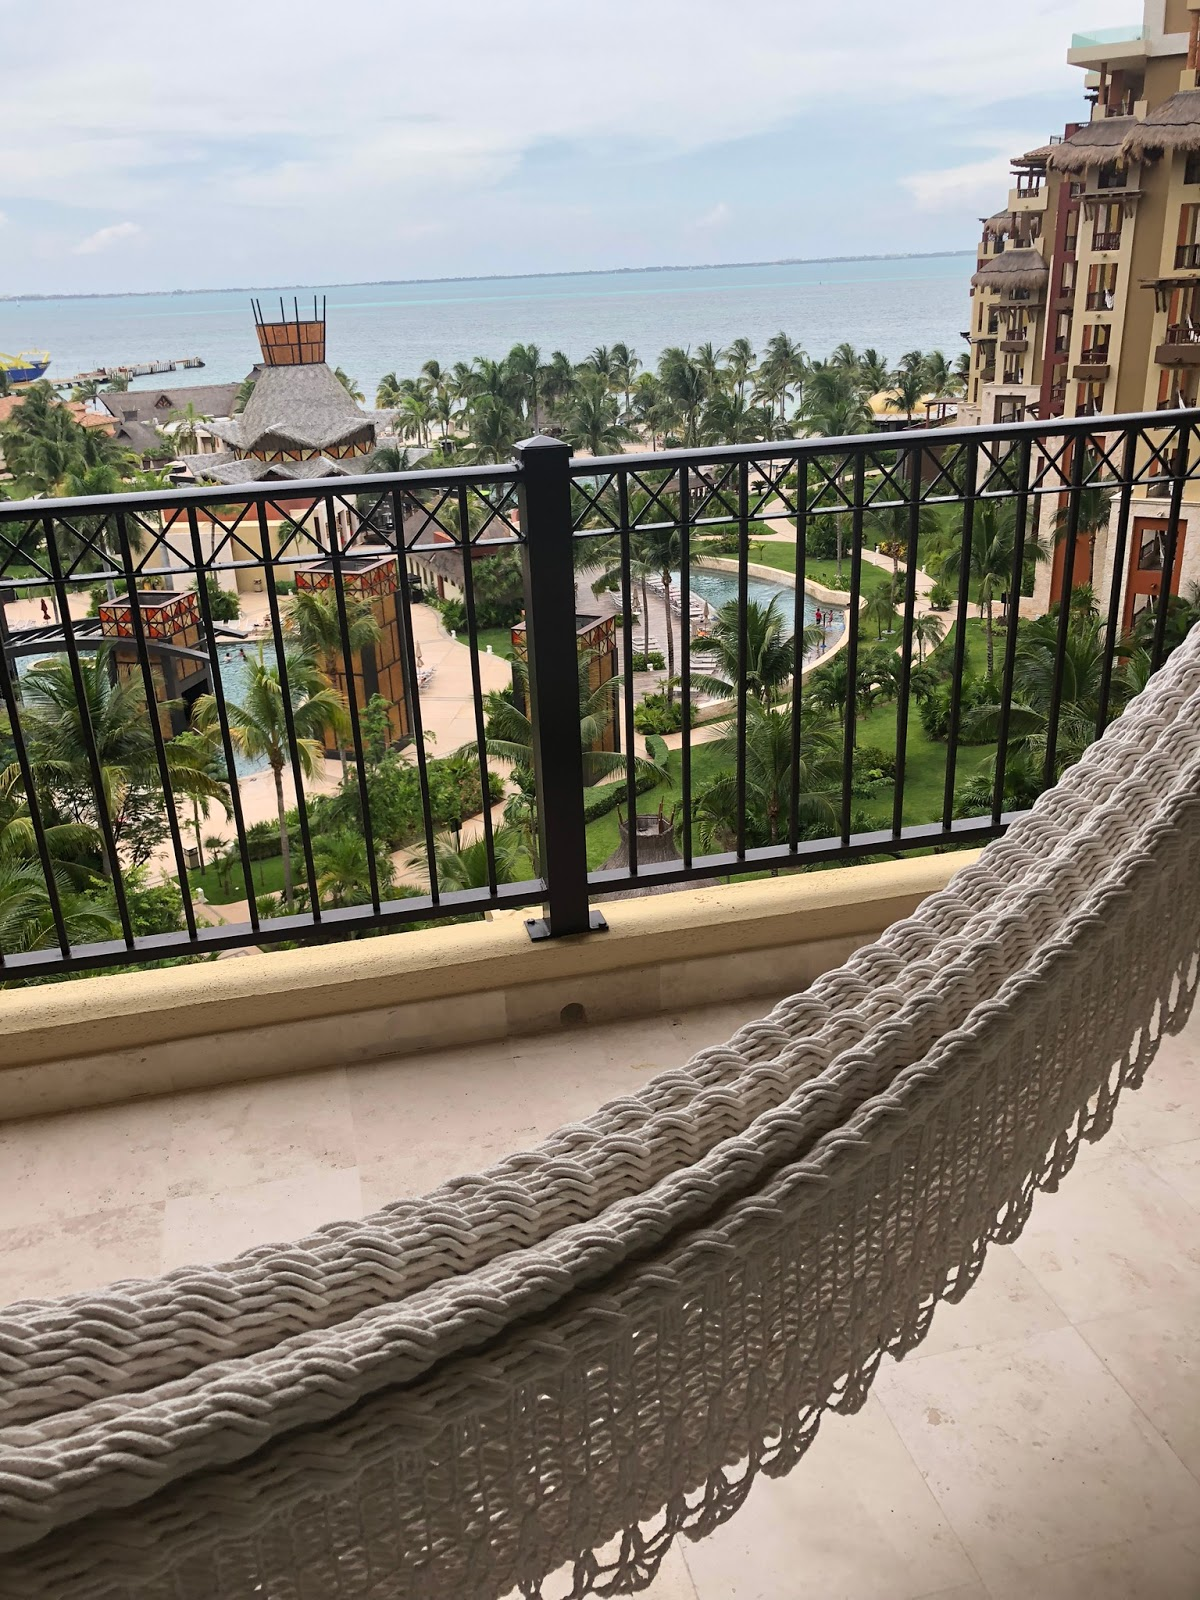 a porch hammock is in the front of the shot with the entire resort behind it, there is a pool closer to the hotel, and the ocean in the back